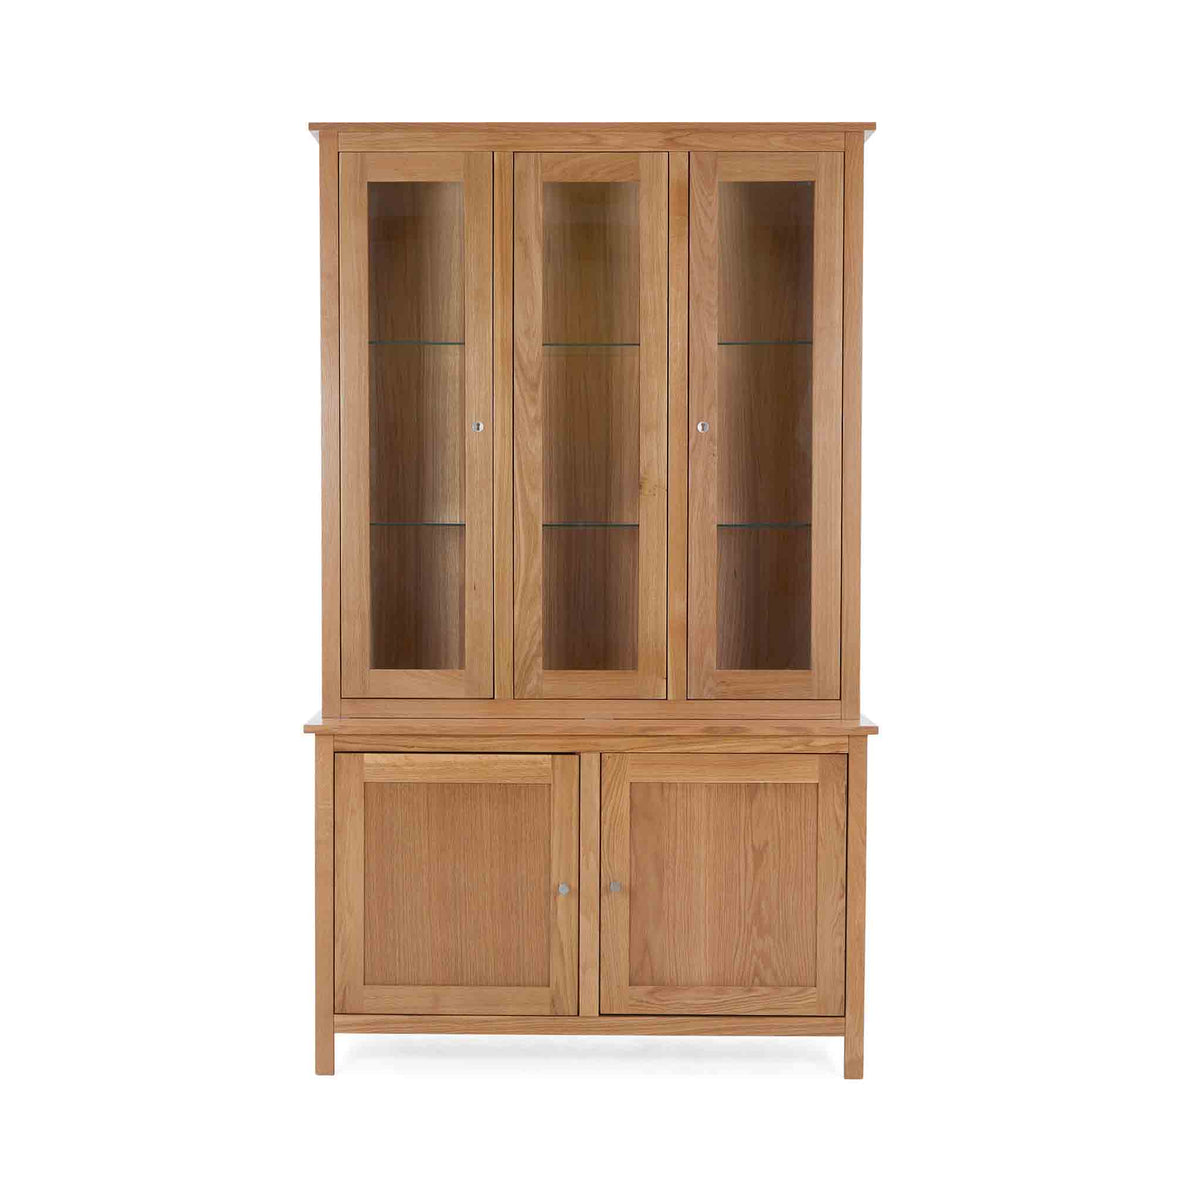 Falmouth Oak Large Display Cabinet with internal light on